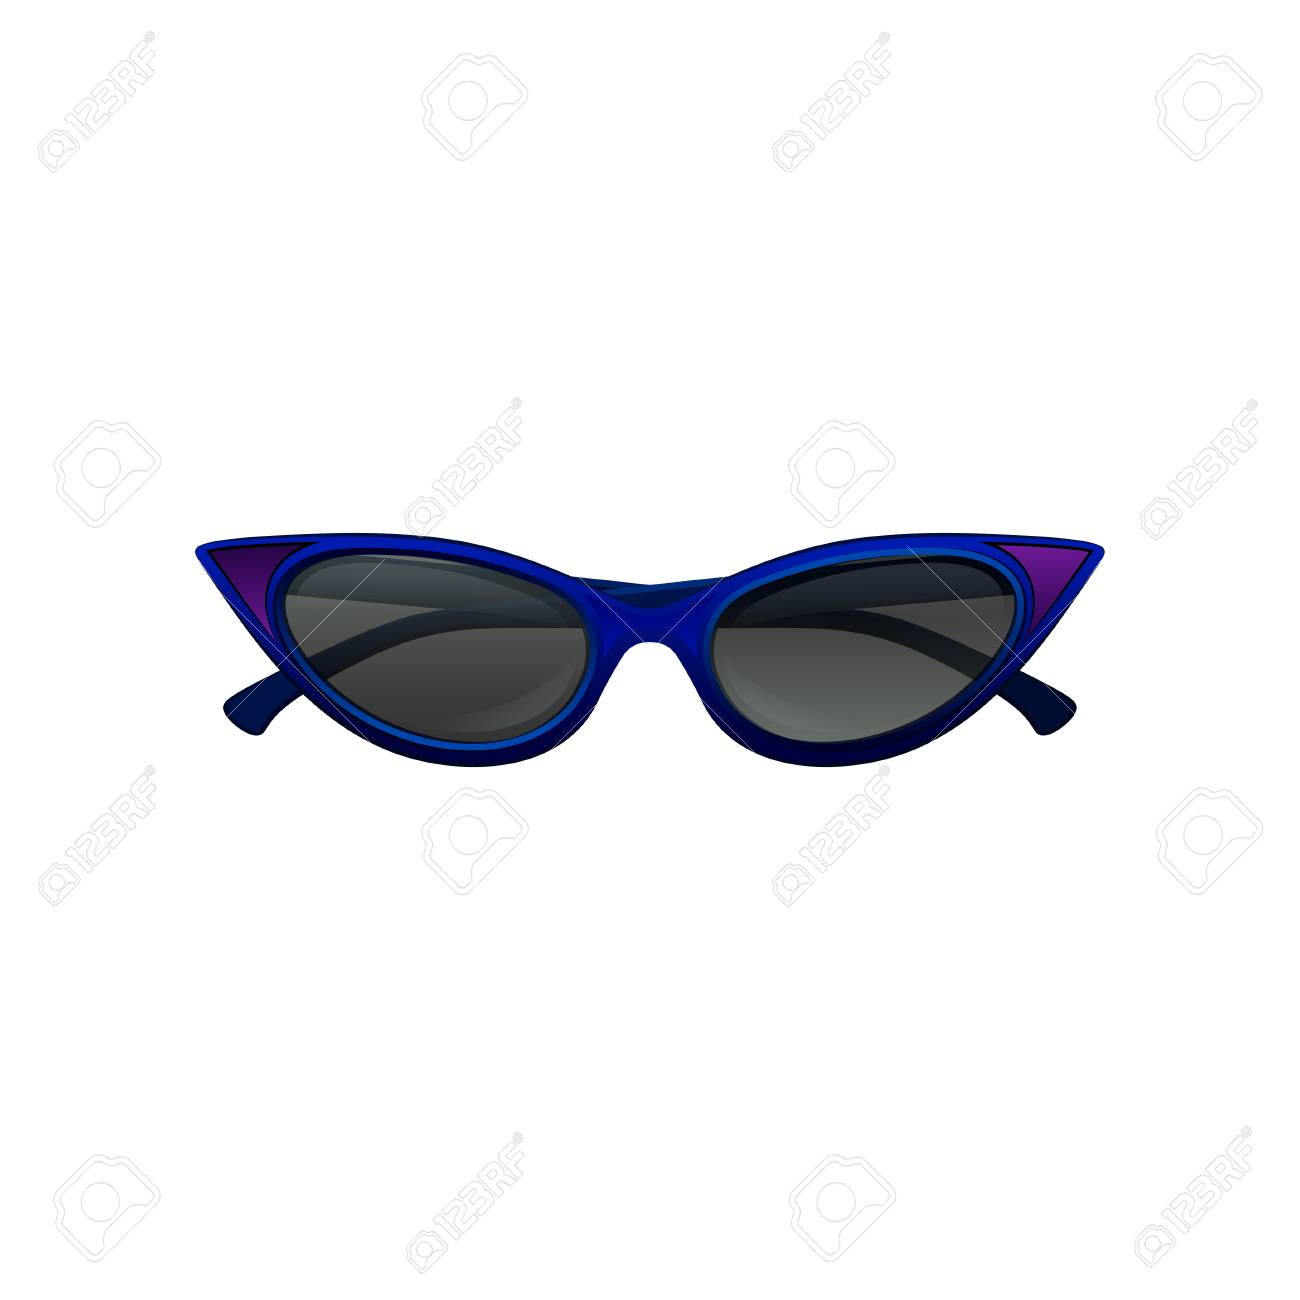 52ea81df4 Cartoon illustration of elegant cat eye sunglasses with blue frame and black  tinted lenses. Protective